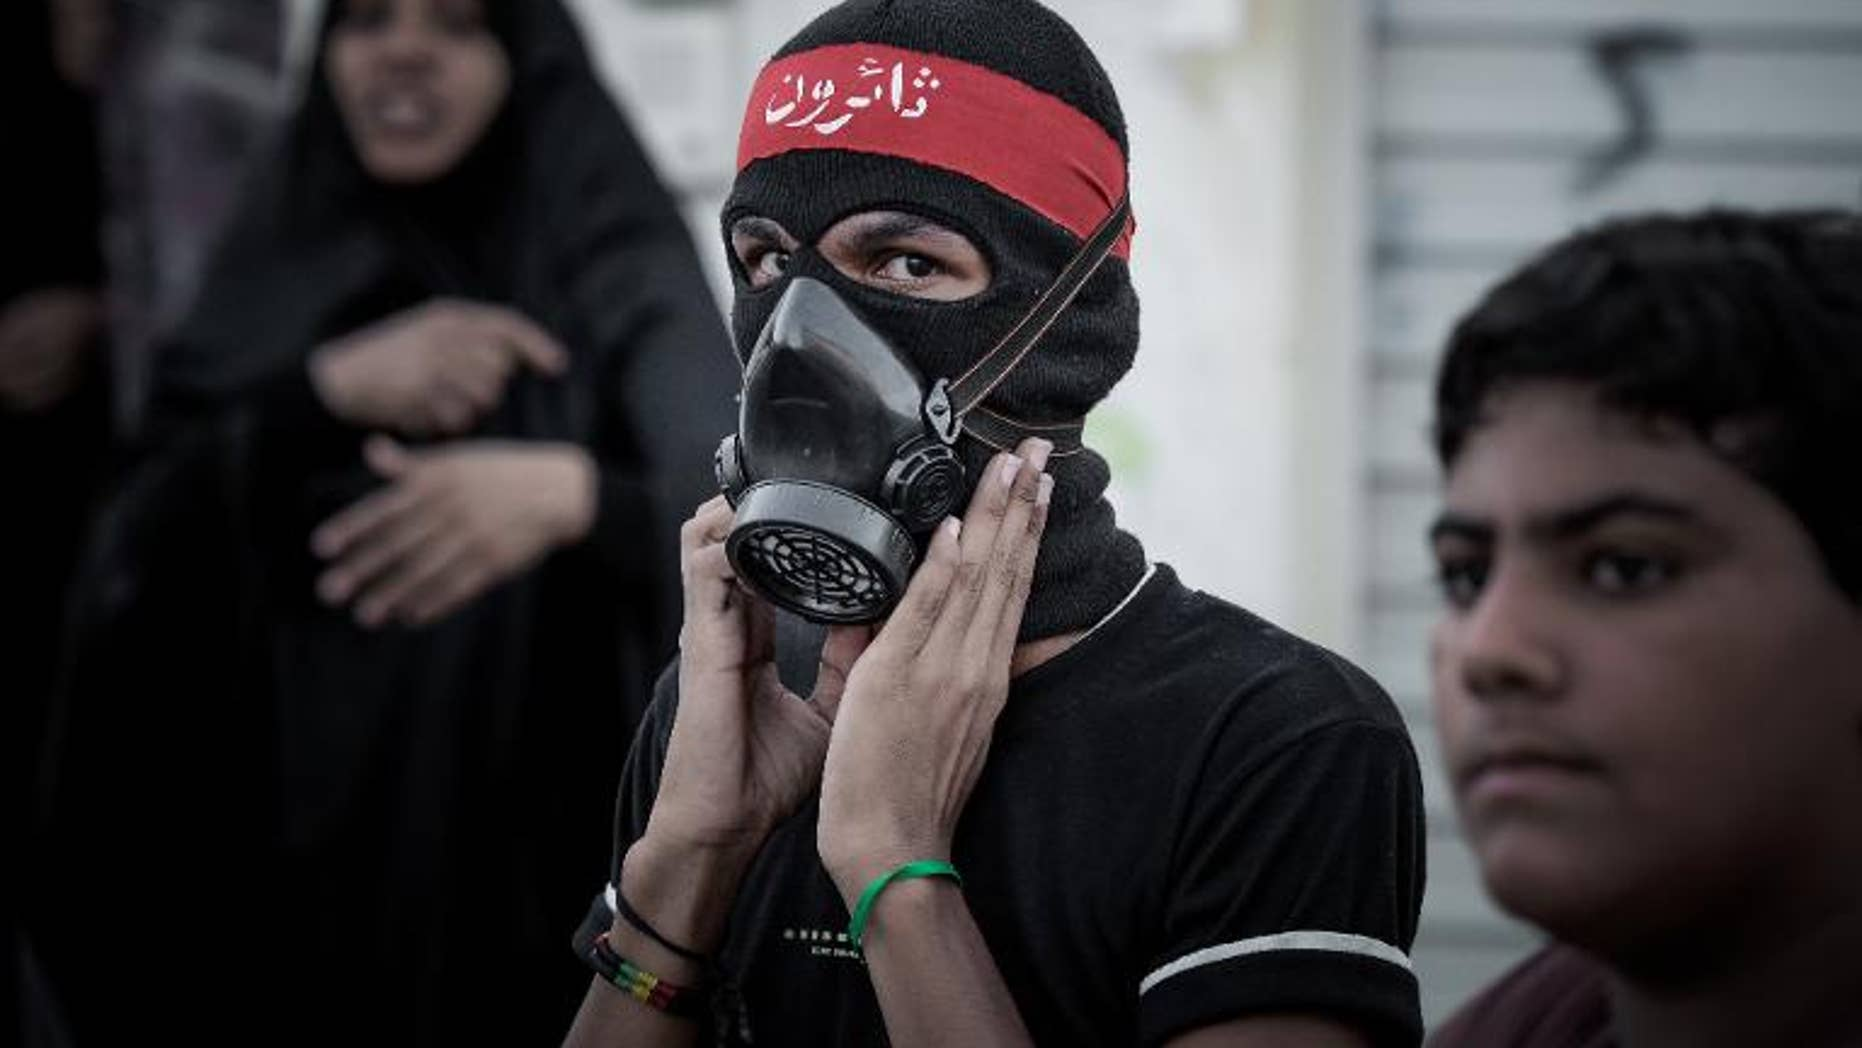 A Bahraini protester poses for a picture during clashes with riot police in the village of al-Maqsha, on September 21, 2013